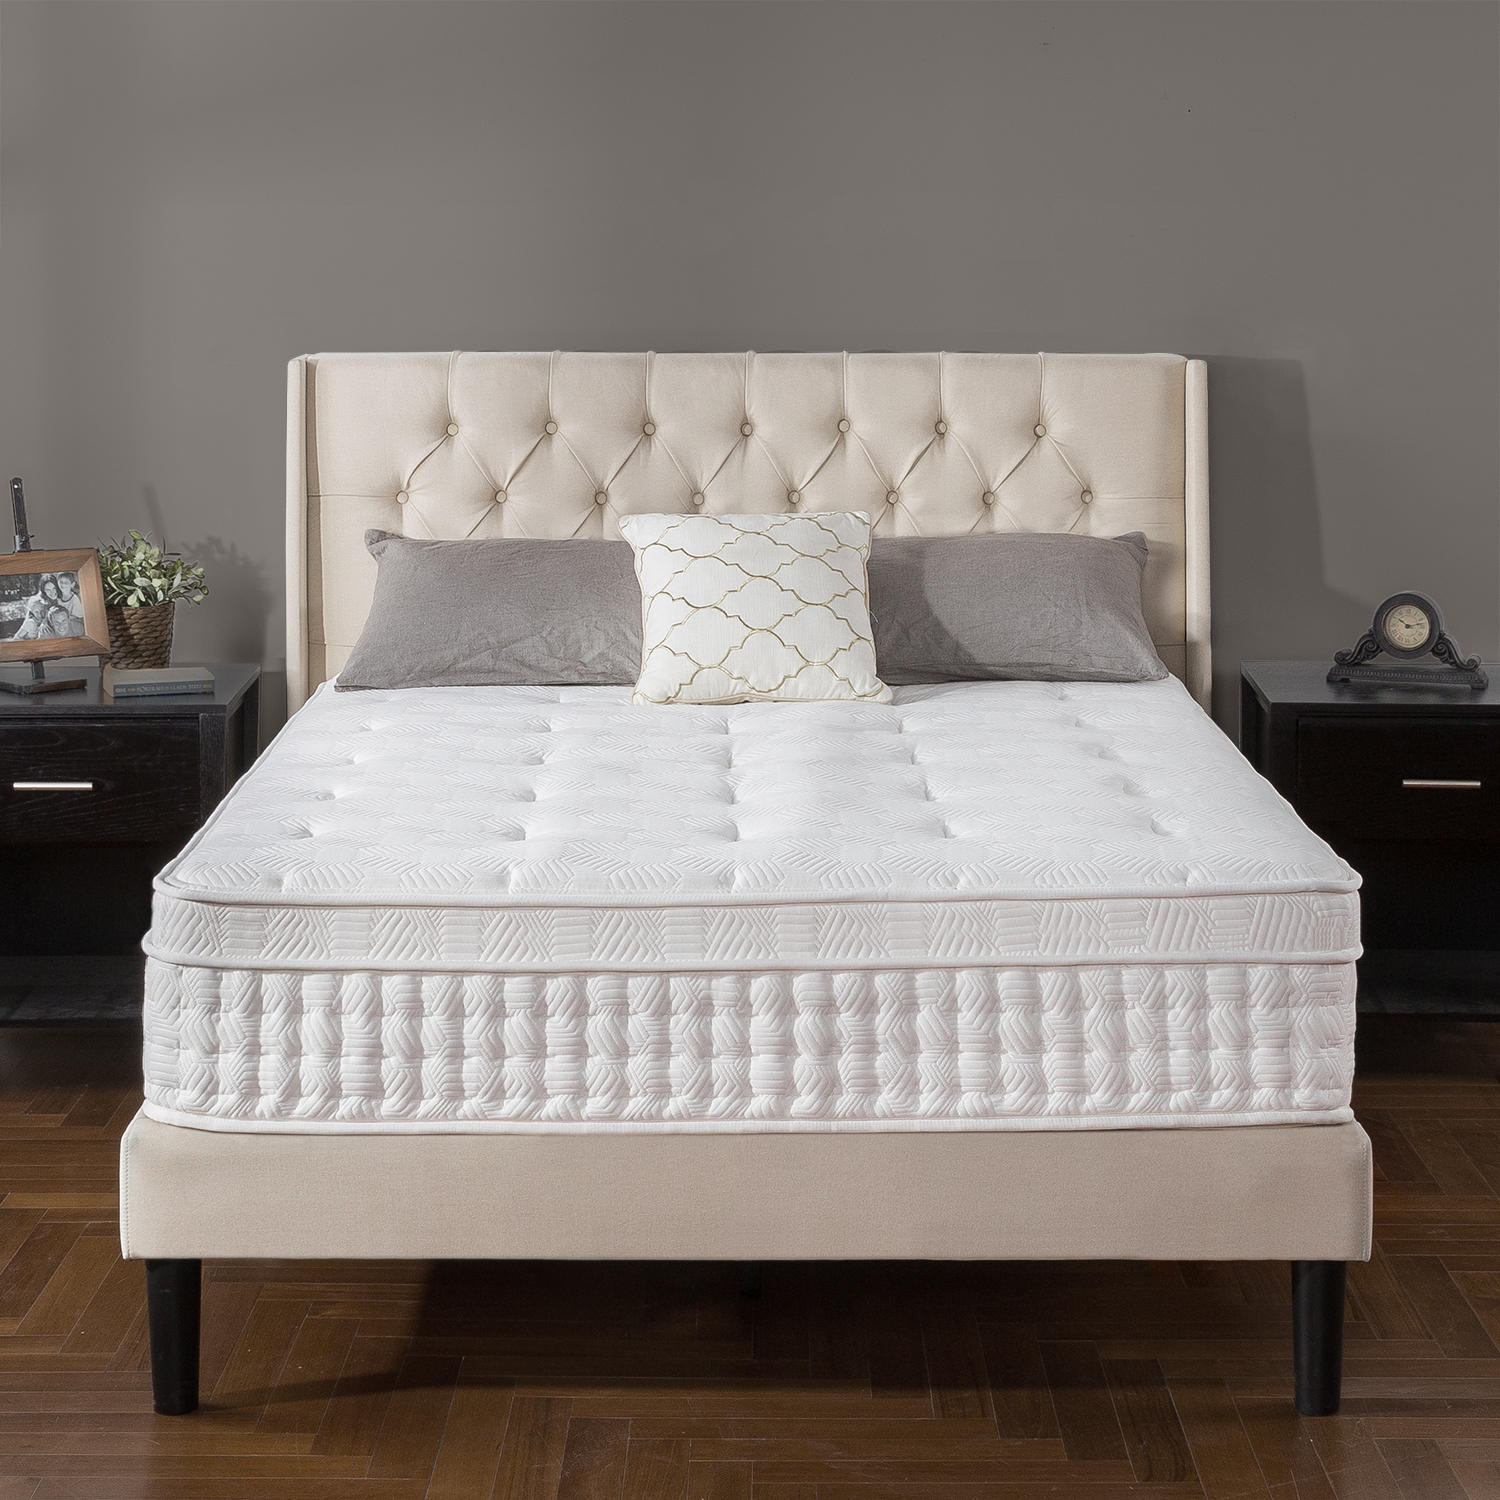 "Zinus Night Therapy iCoil 13"" Deluxe Euro Box Top Spring Queen Mattress"